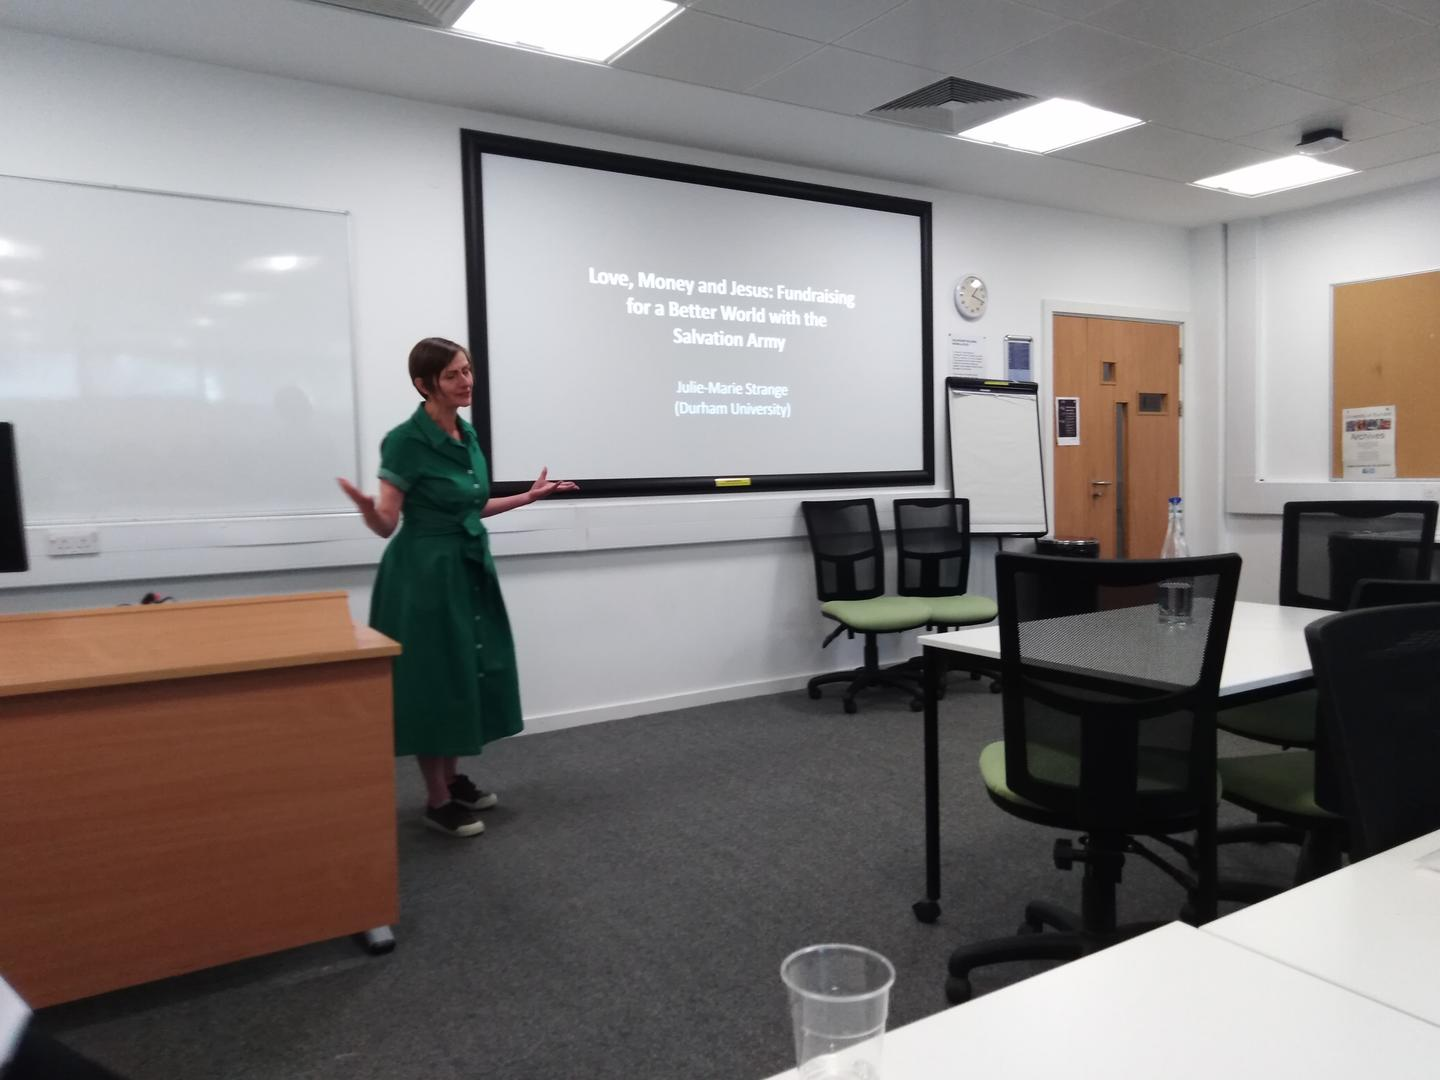 Julie-Marie Strange presenting her paper  'Love, Money and Jesus: Fundraising for a Better World with the Salvation Army', BAVS Conference, 2019